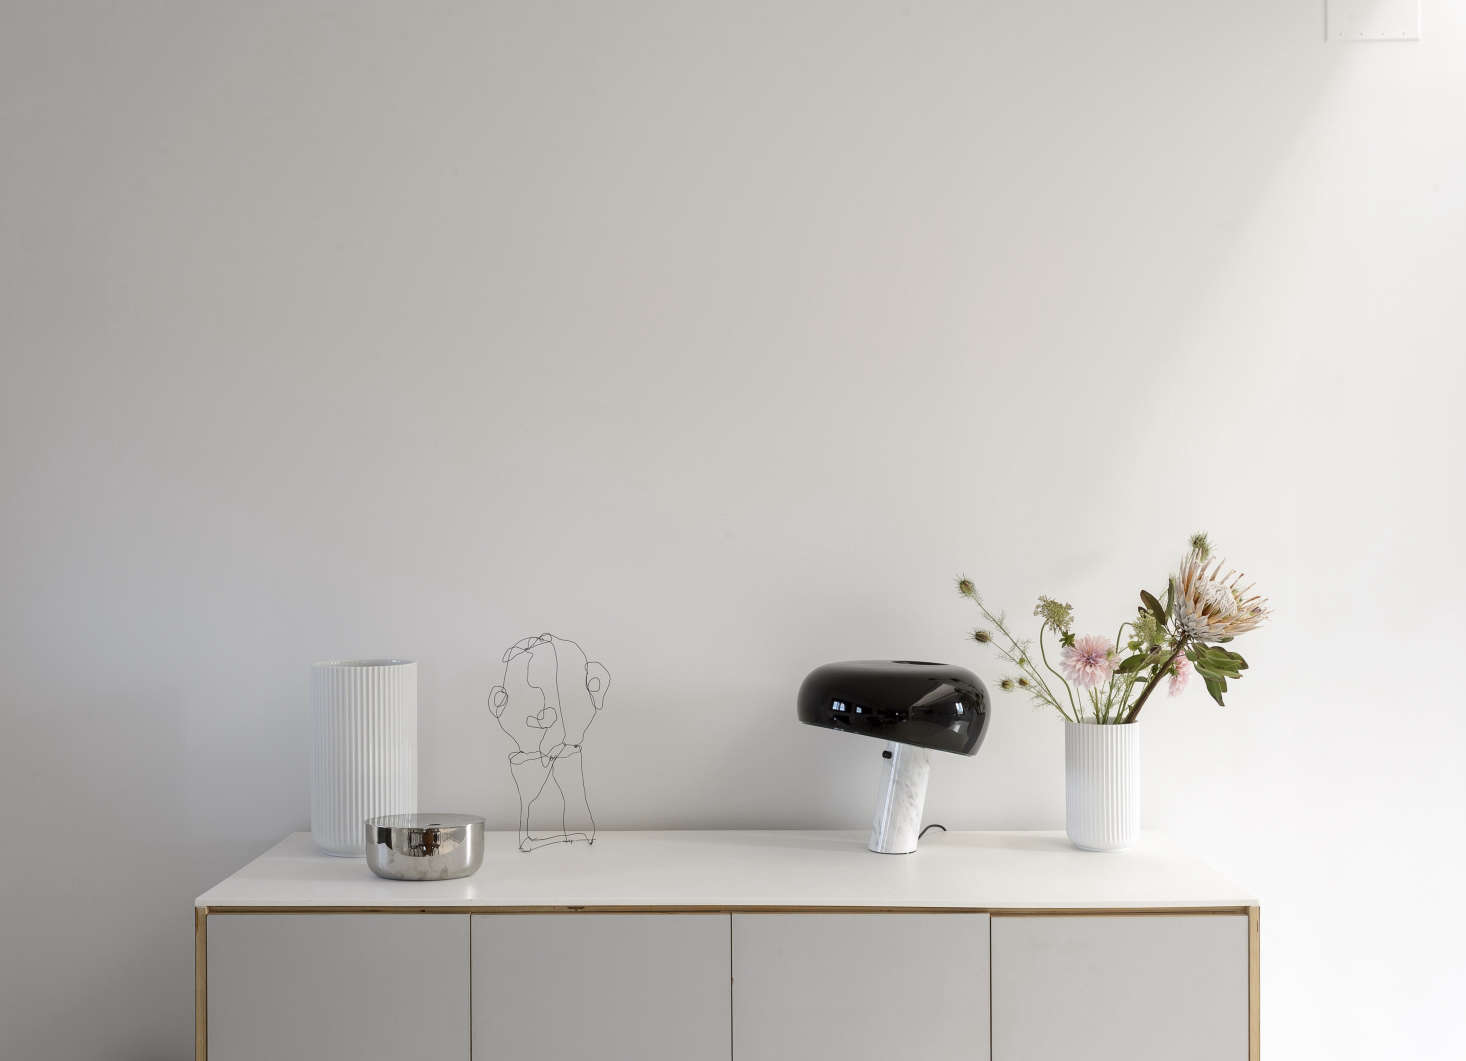 The sideboard, like the kitchen cabinets, is an Ikea hack. It displays flutedLyngby Vases by Danish porcelain company Lyngby. The wire sculpture is a portrait of Peder by Camilla's sister, Pernille Vest (@pernille.vest), who is a kindred spirit: She's an interiors stylist in Copenhagen and a regular contributor to Danish design magazine Rum.